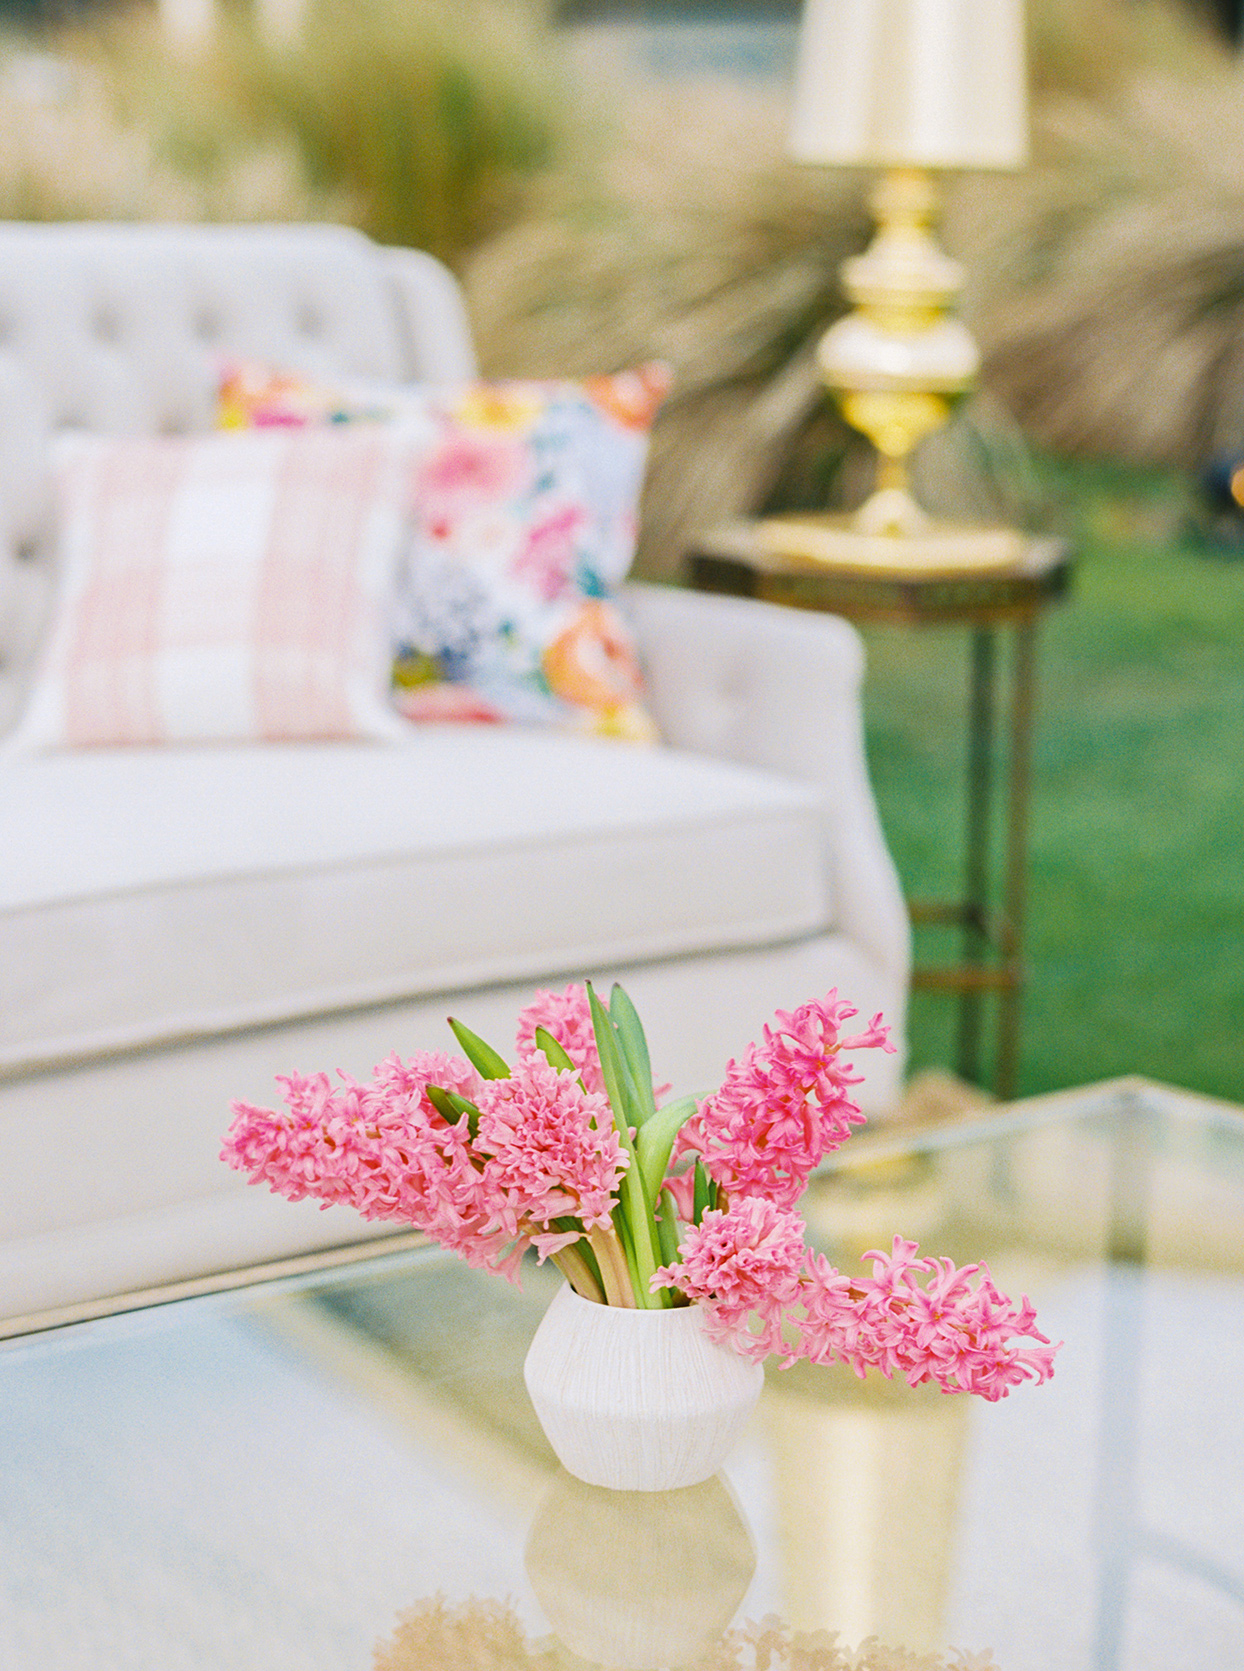 lauren dan wedding pink floral arrangement in lounge area